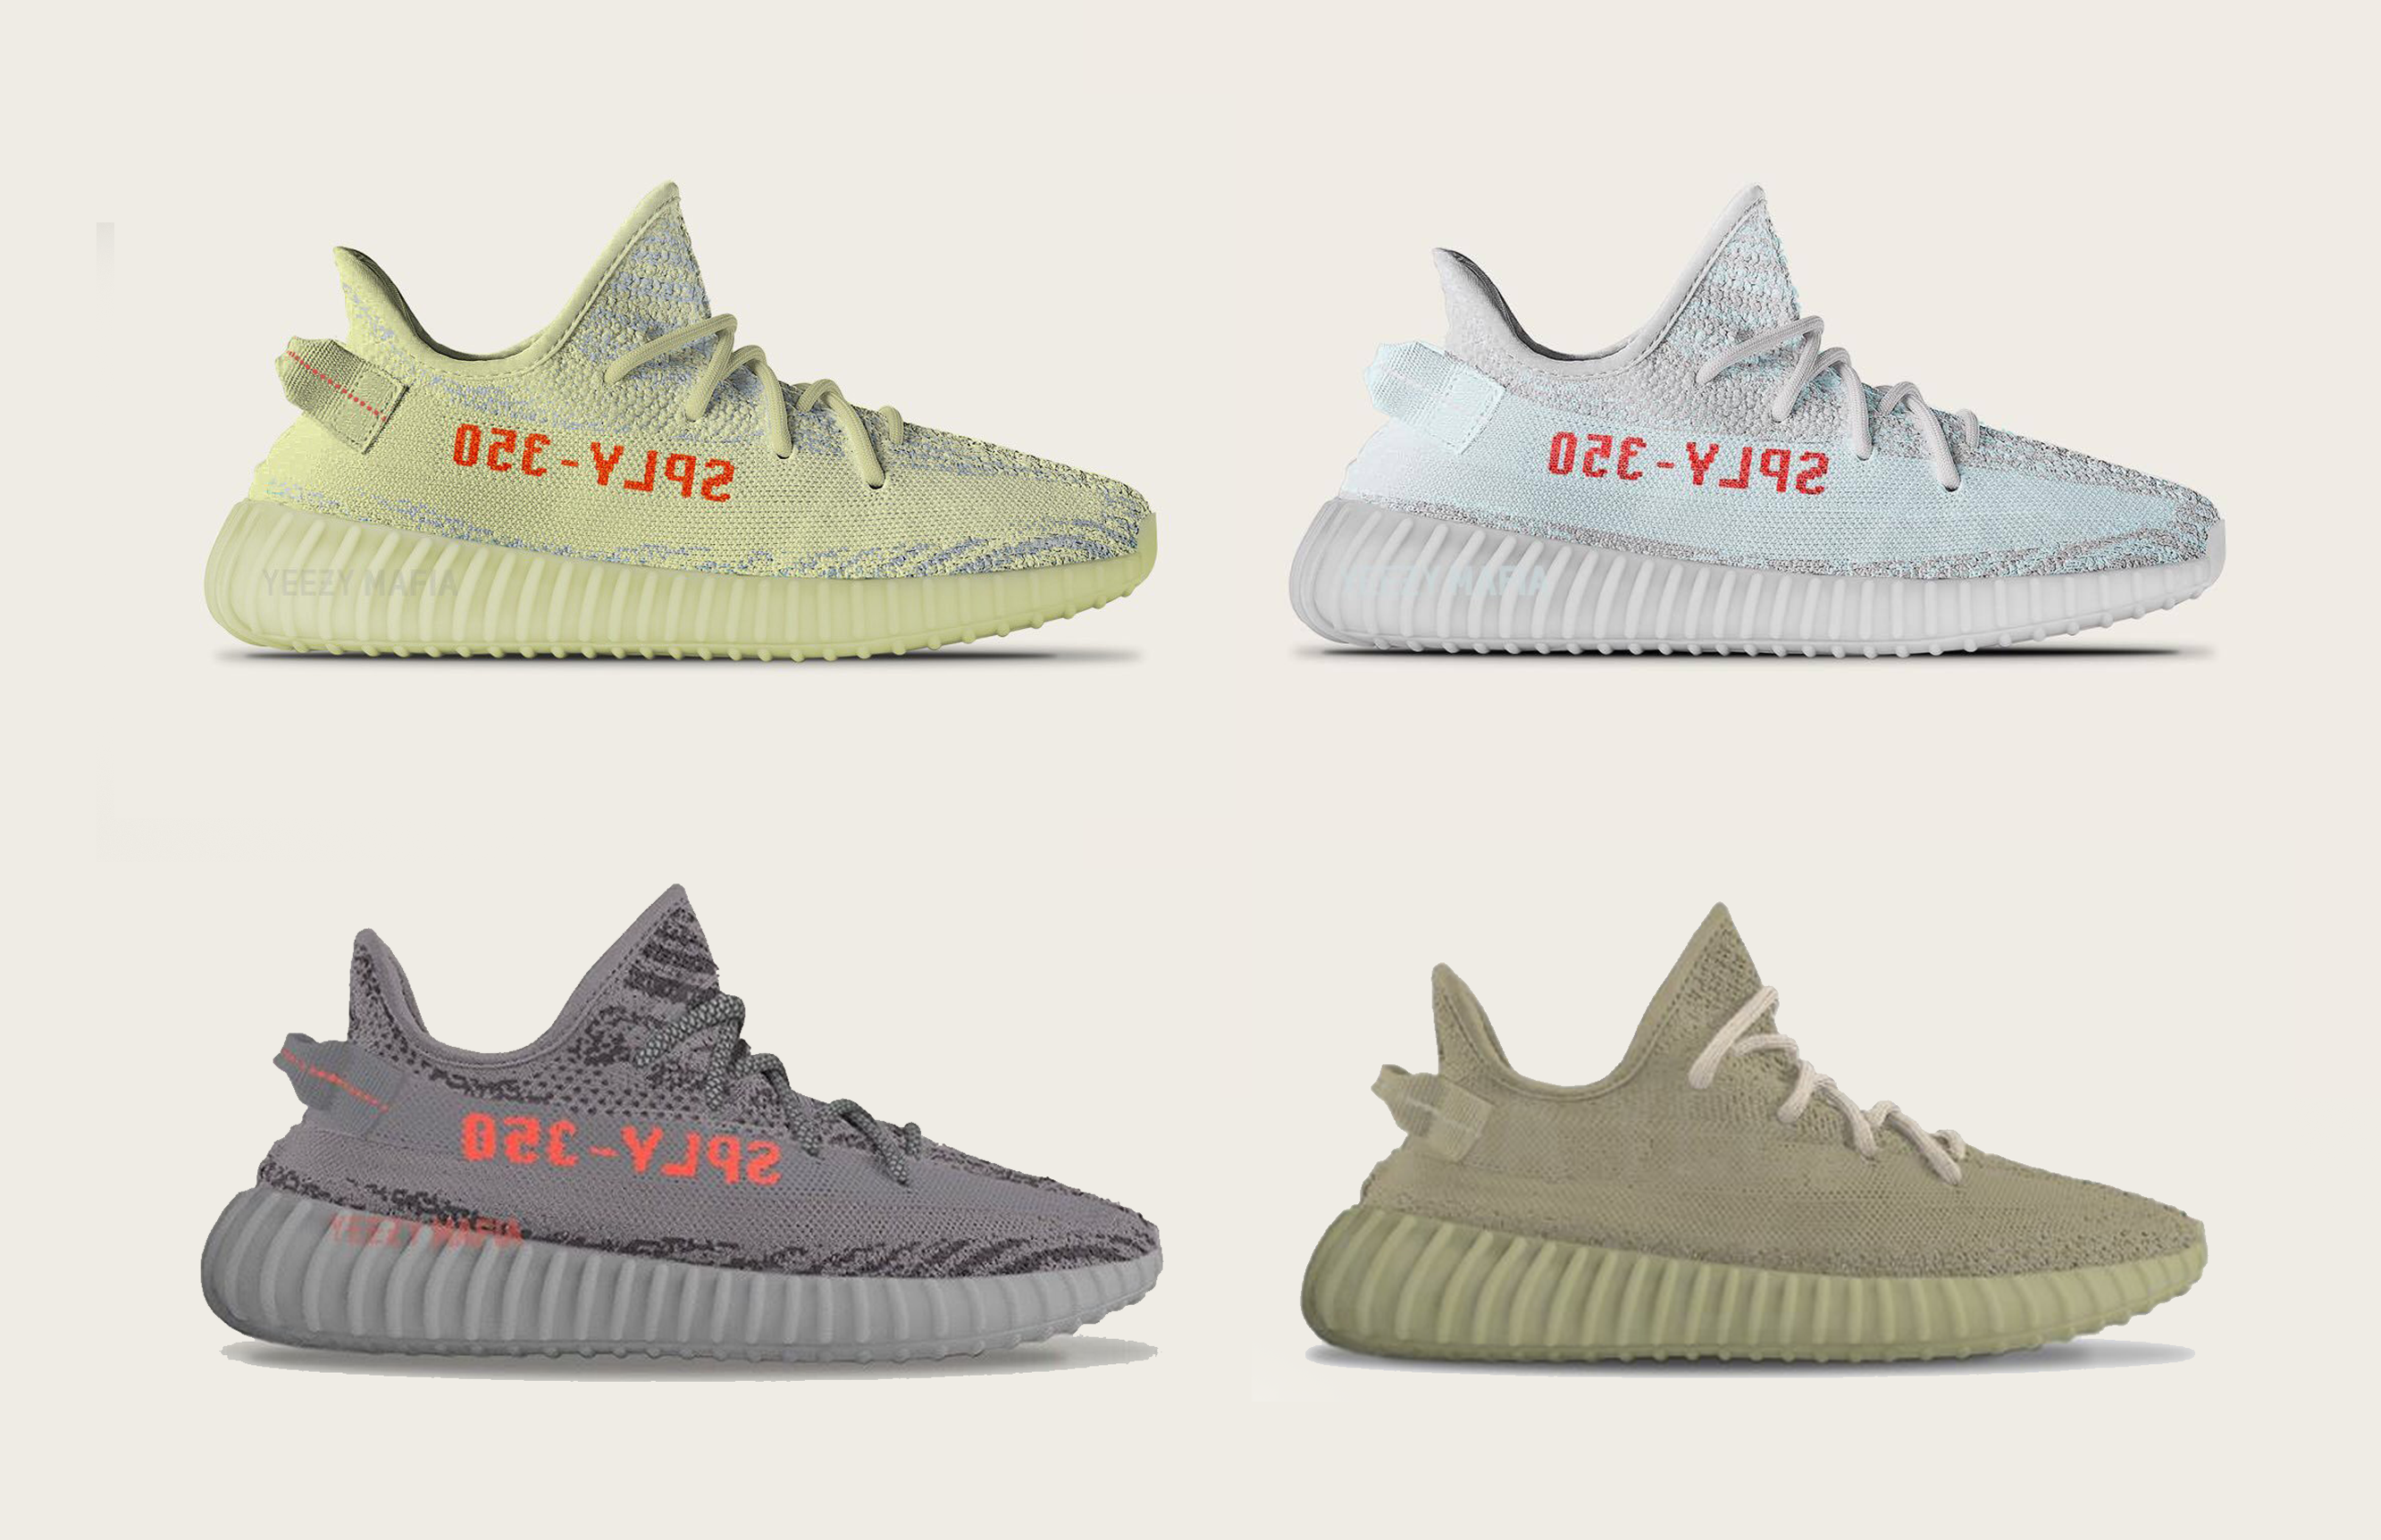 new concept 7fe4d 35c8c These Are The 4 Remaining YEEZY BOOST 350 V2 Models Dropping ...